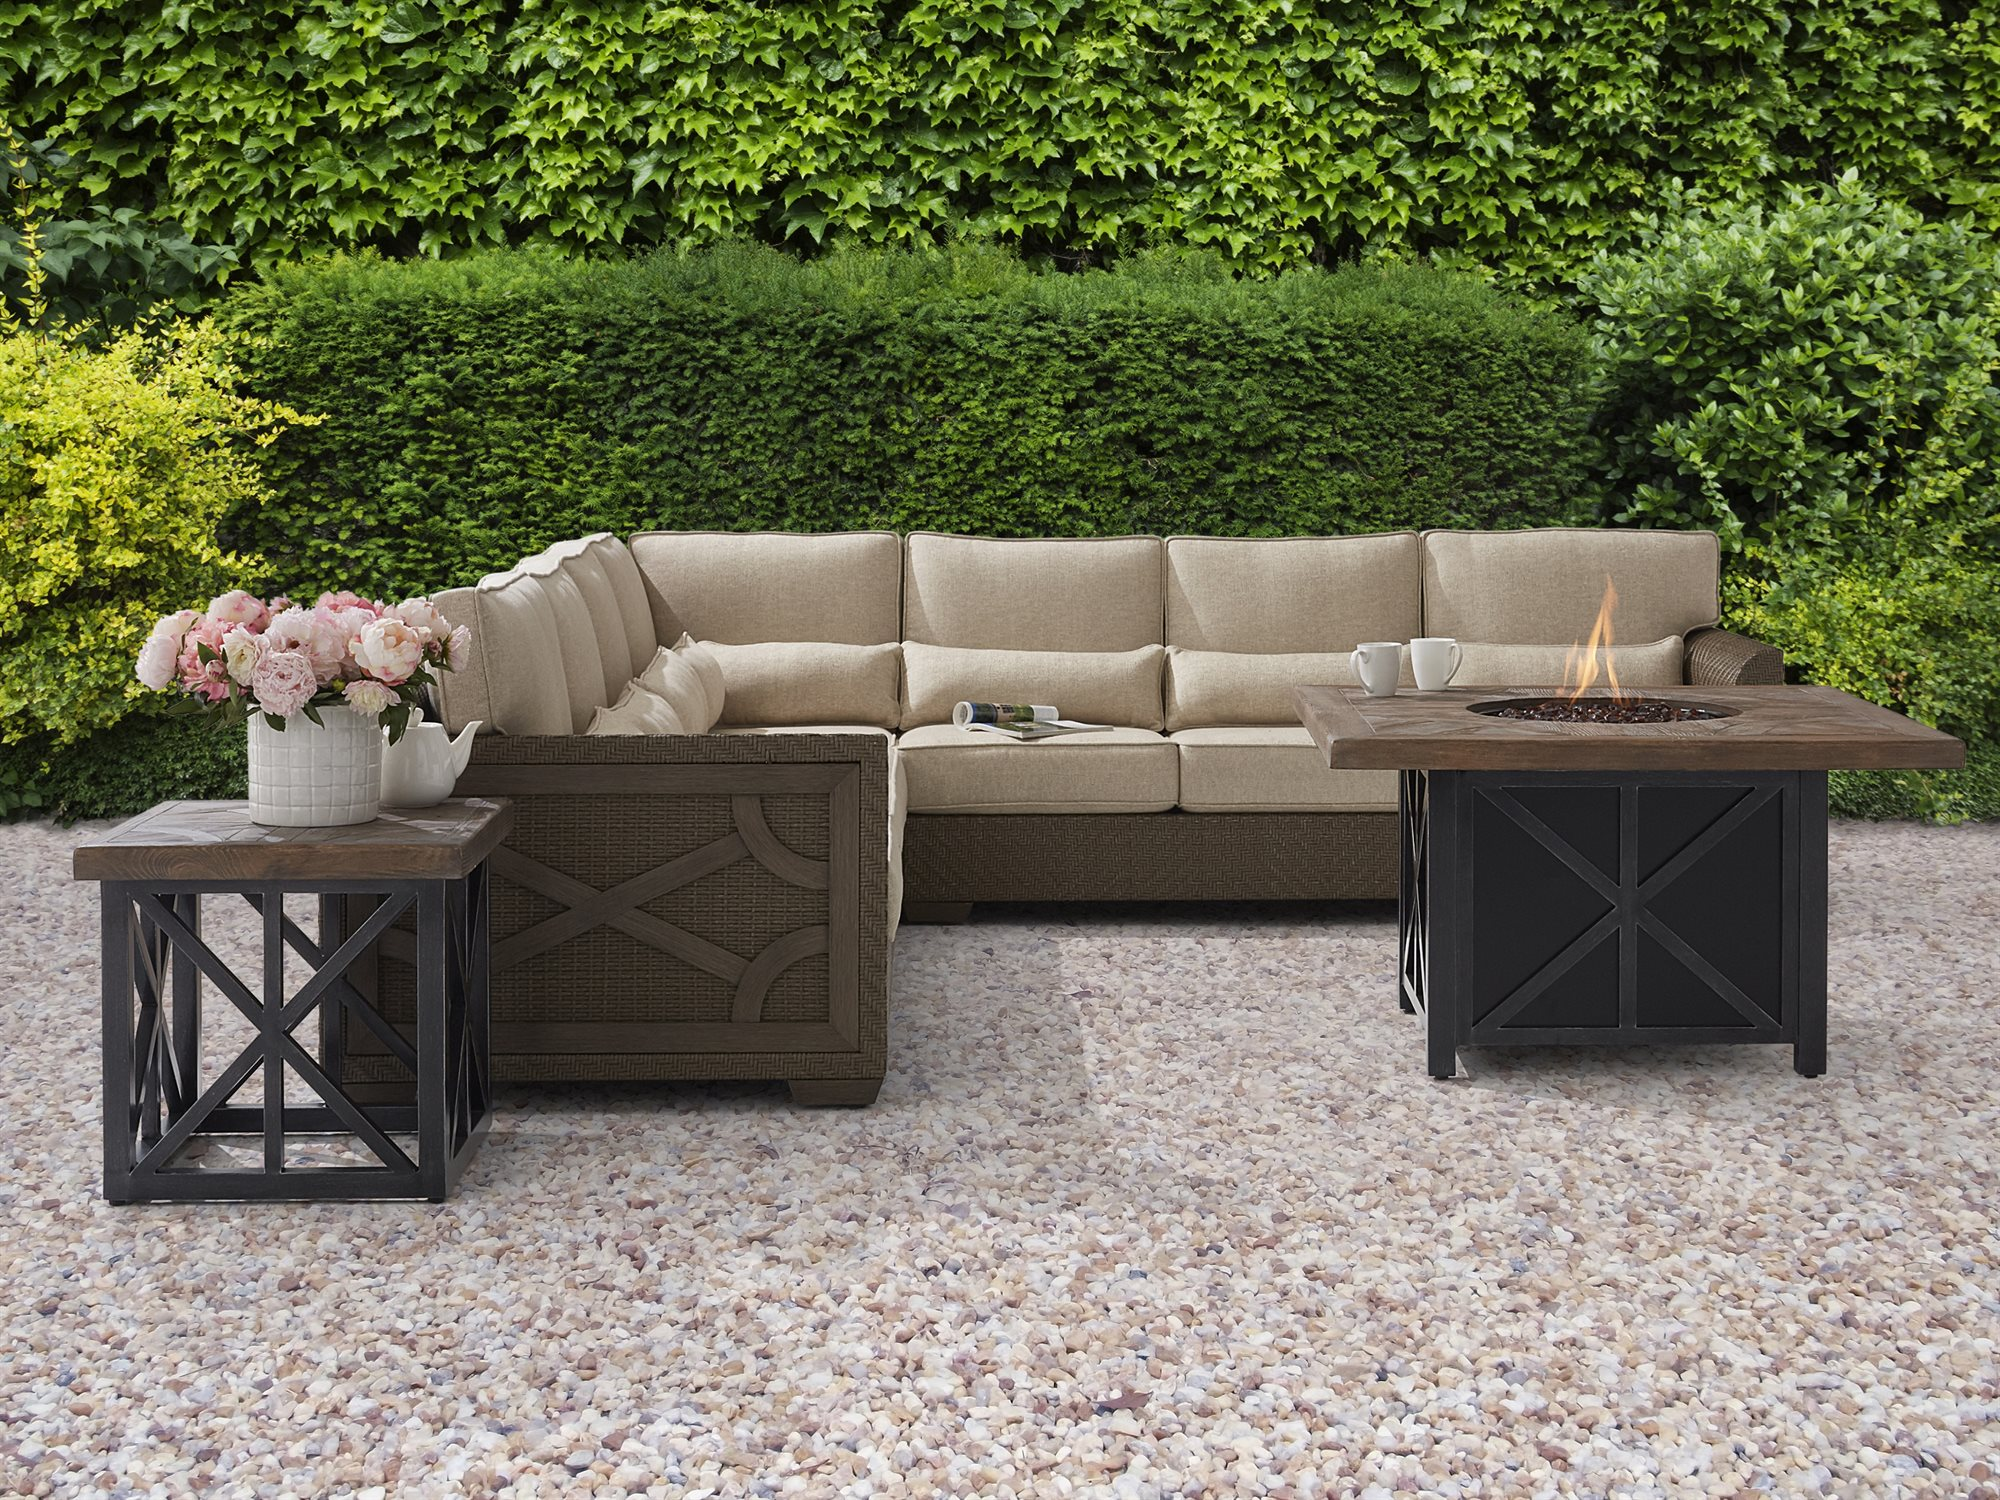 A R T Furniture Outdoor Arch Salvage Wicker Sectional Set